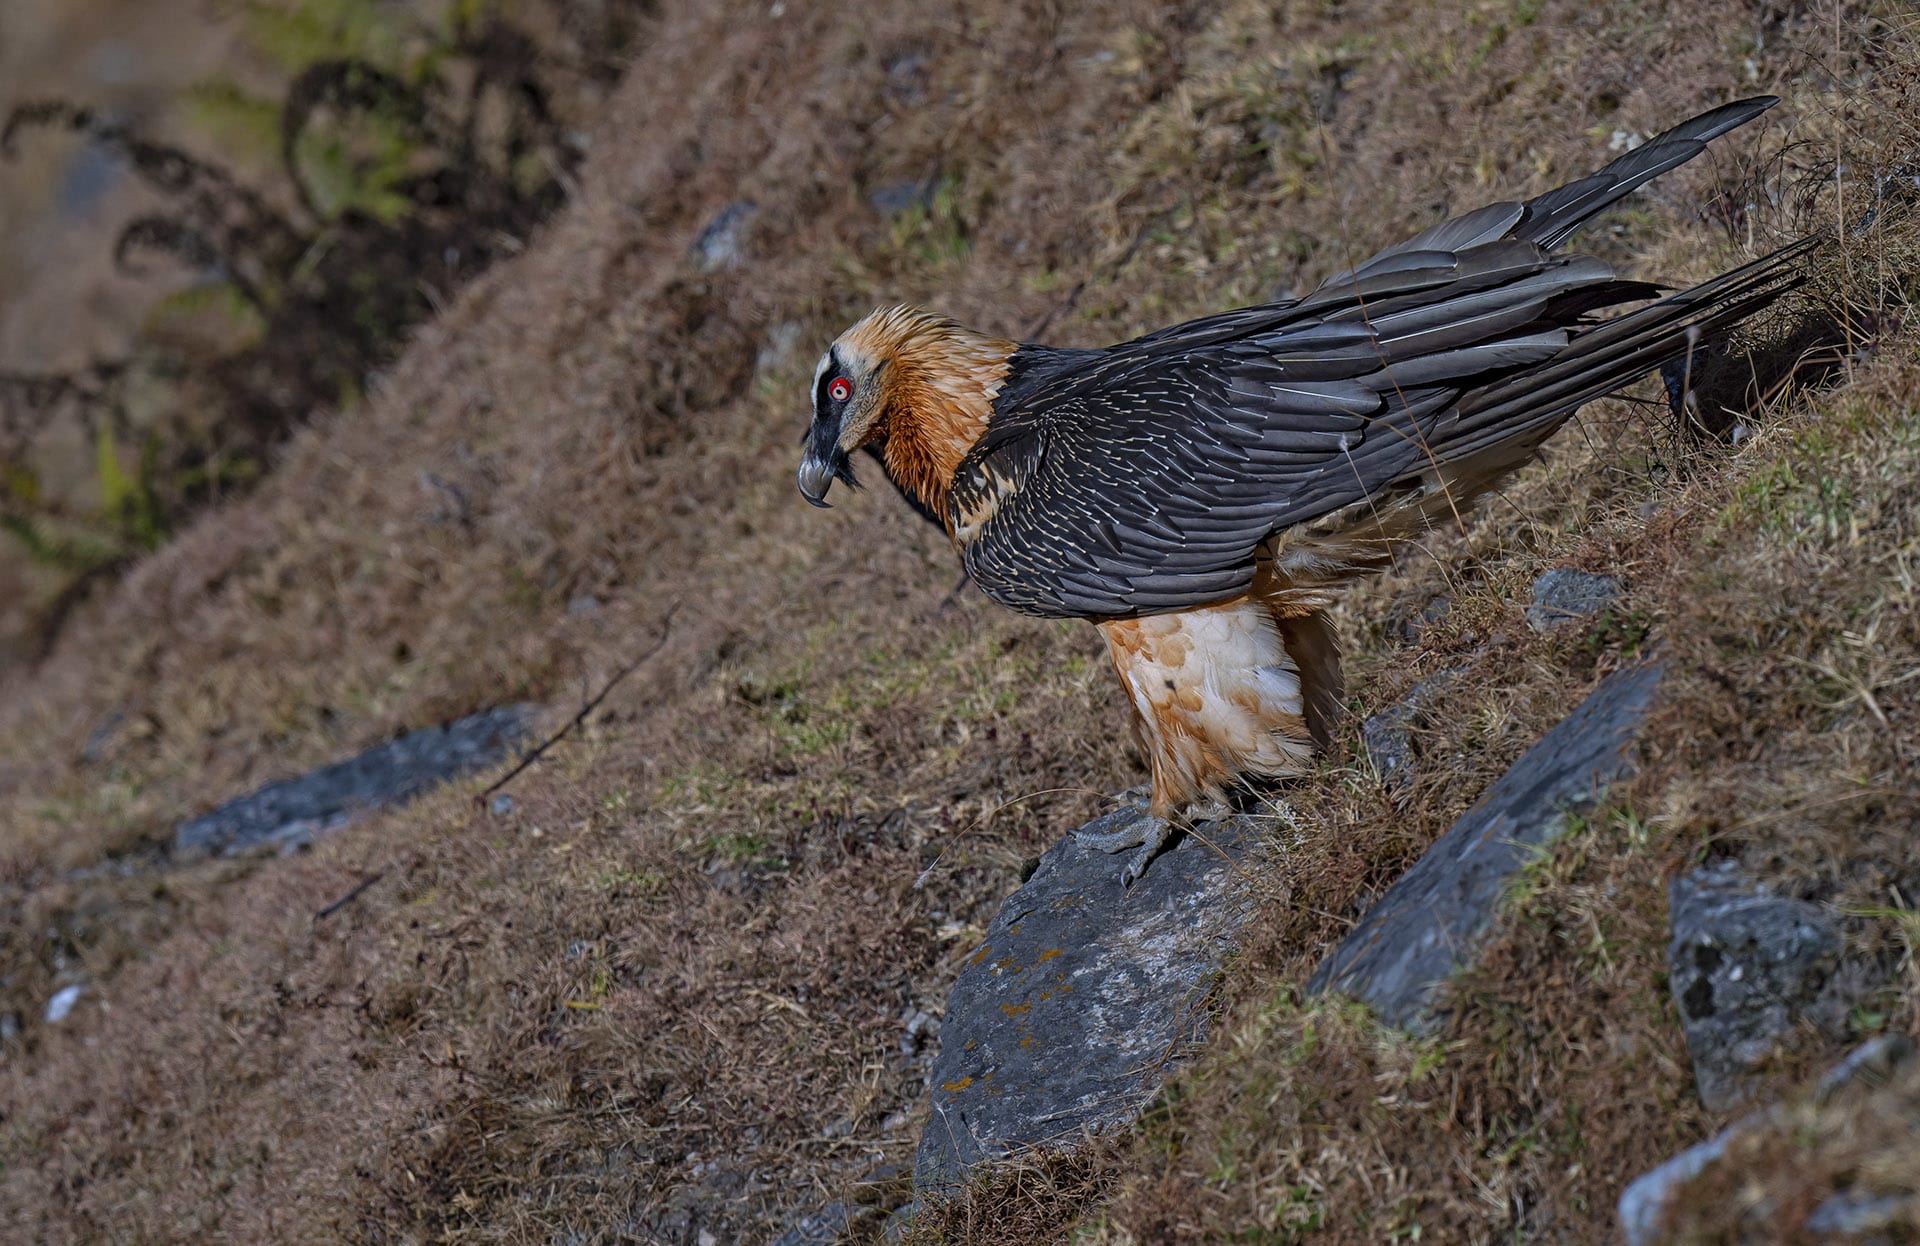 Vultures of the genus Gyps were affected most during the worst diclofenac-related deaths in the 1990s and 2000s. The drug that poisoned them may even affect the steppe eagle and the bearded vulture in the future. Steppe eagles winter in India and have been found around large cattle carcasses which could be rich sources of the drug. Similarly, bearded vultures too are known to feed on bone marrow and could be exposed to the dangers of diclofenac.